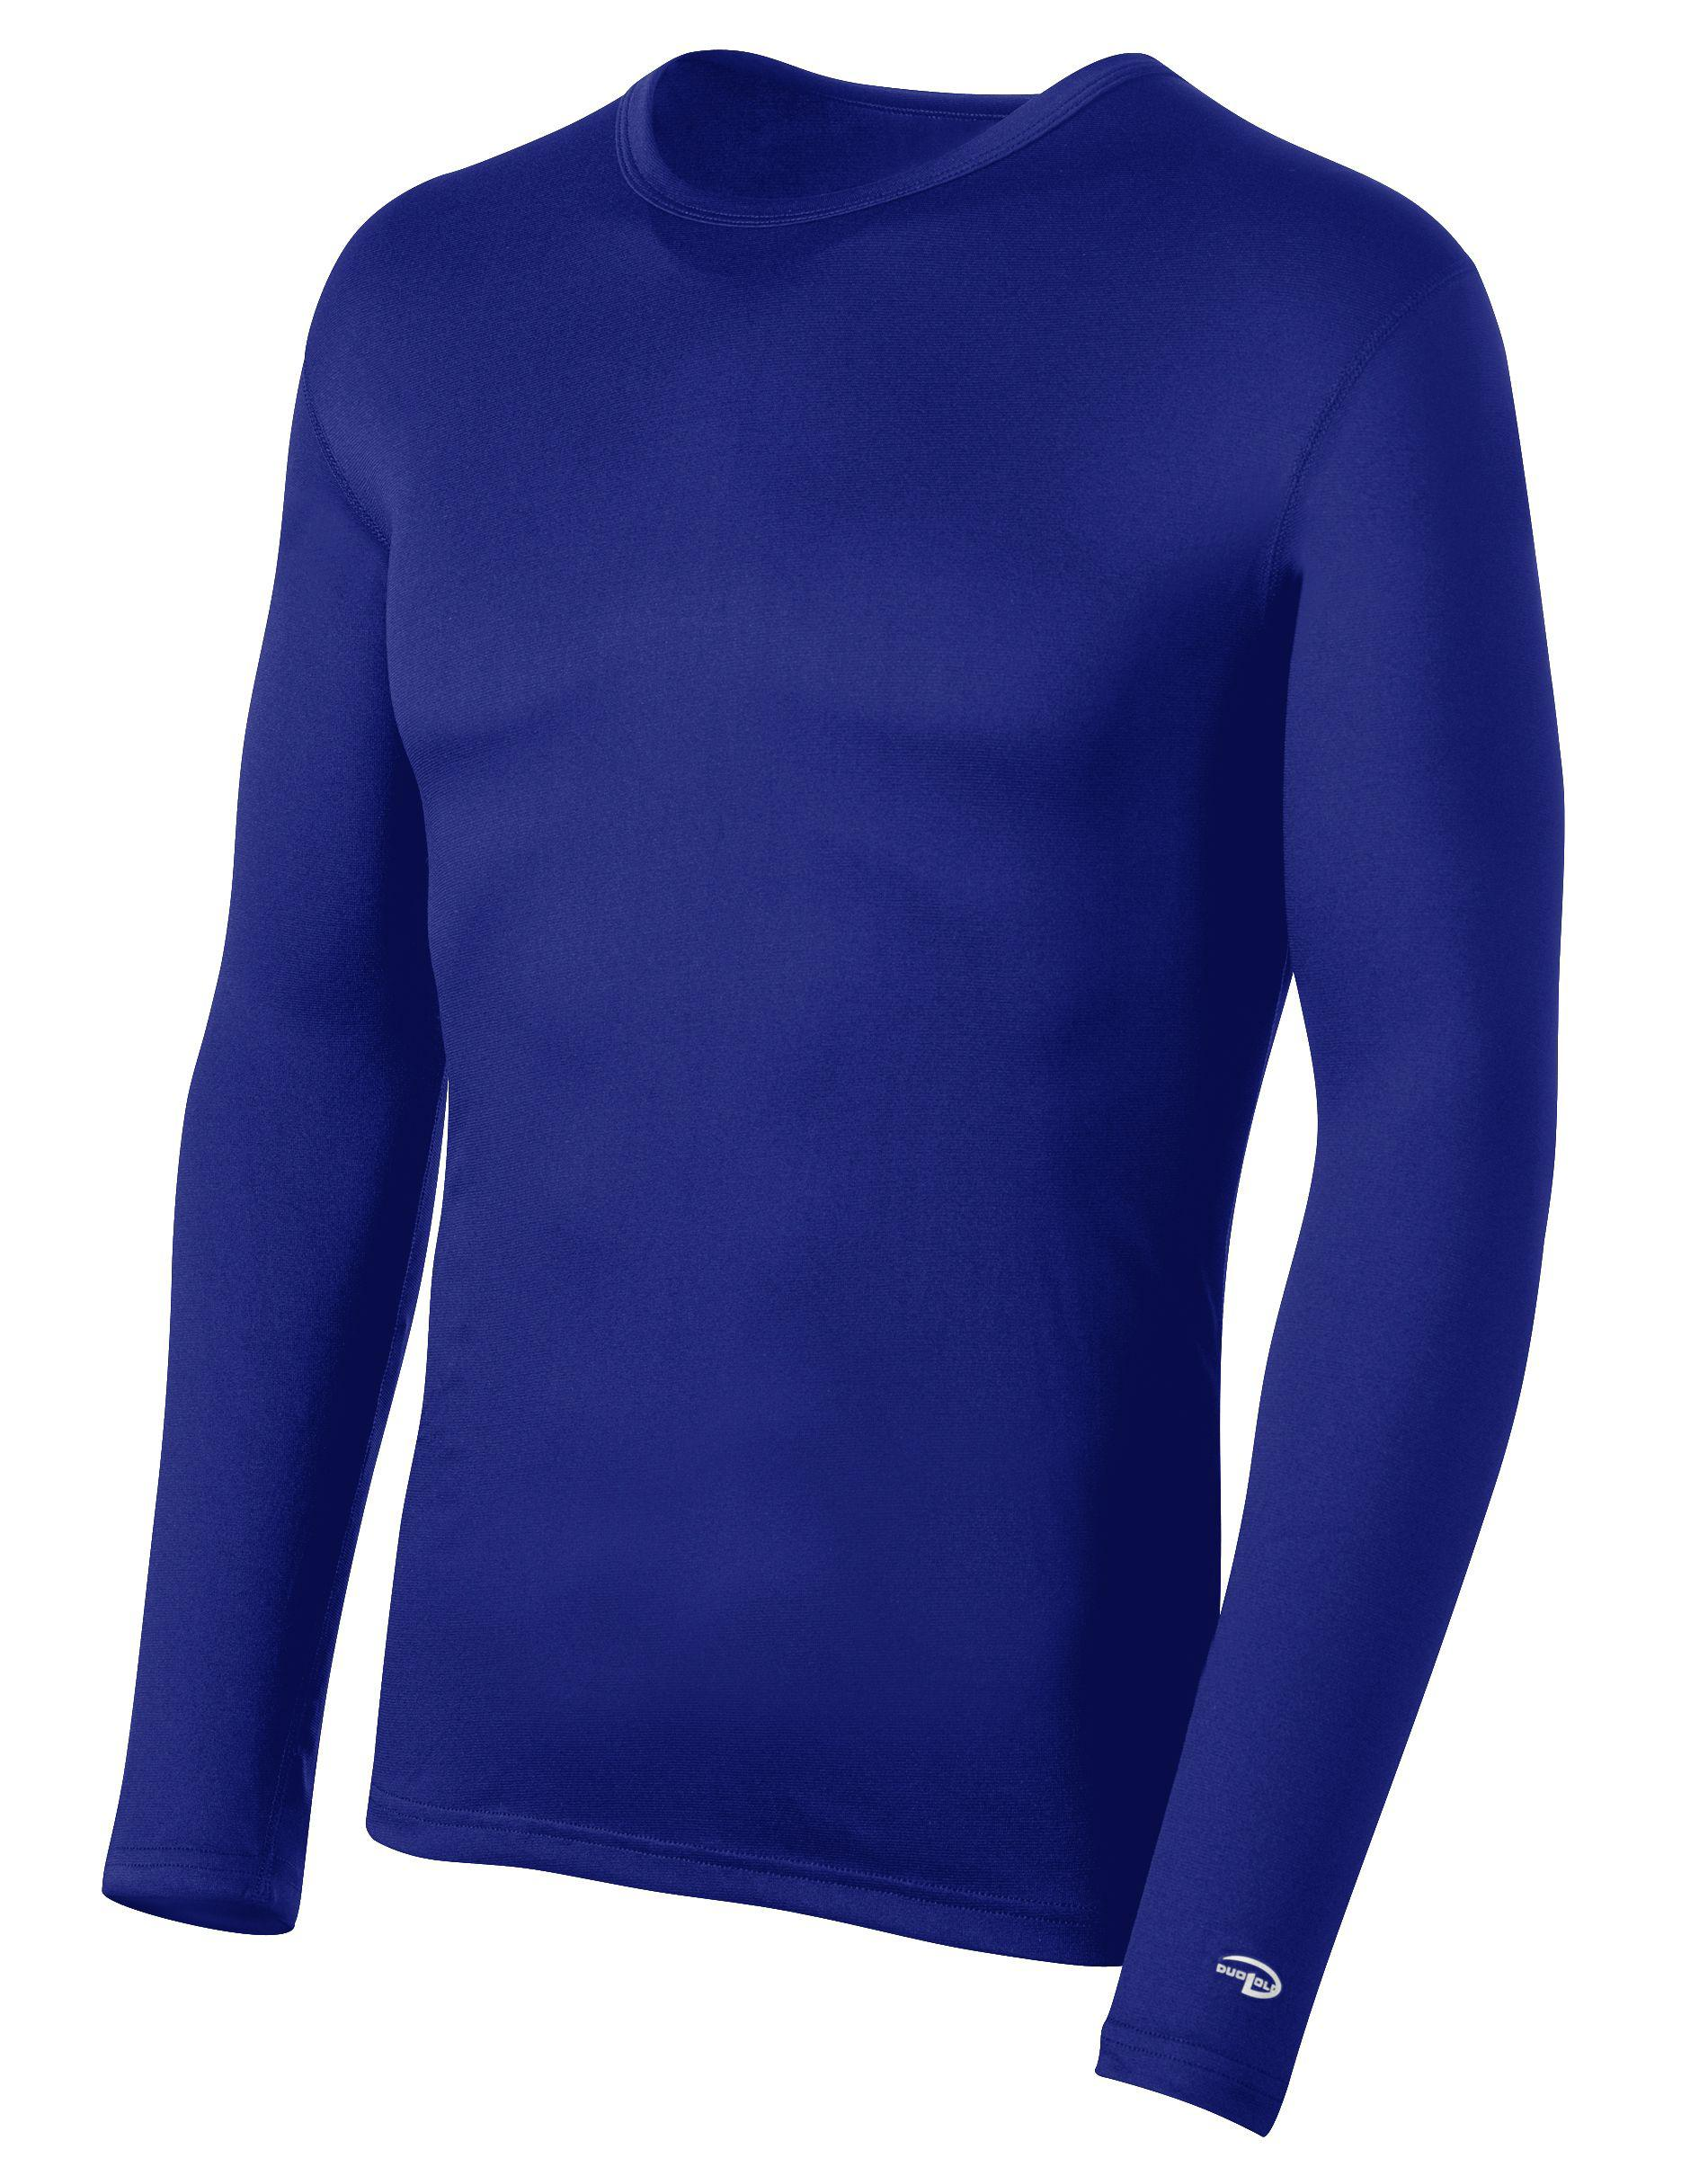 ca51f769 Lyst - Champion Duofold By Varitherm Long-sleeve Thermal Shirt in ...